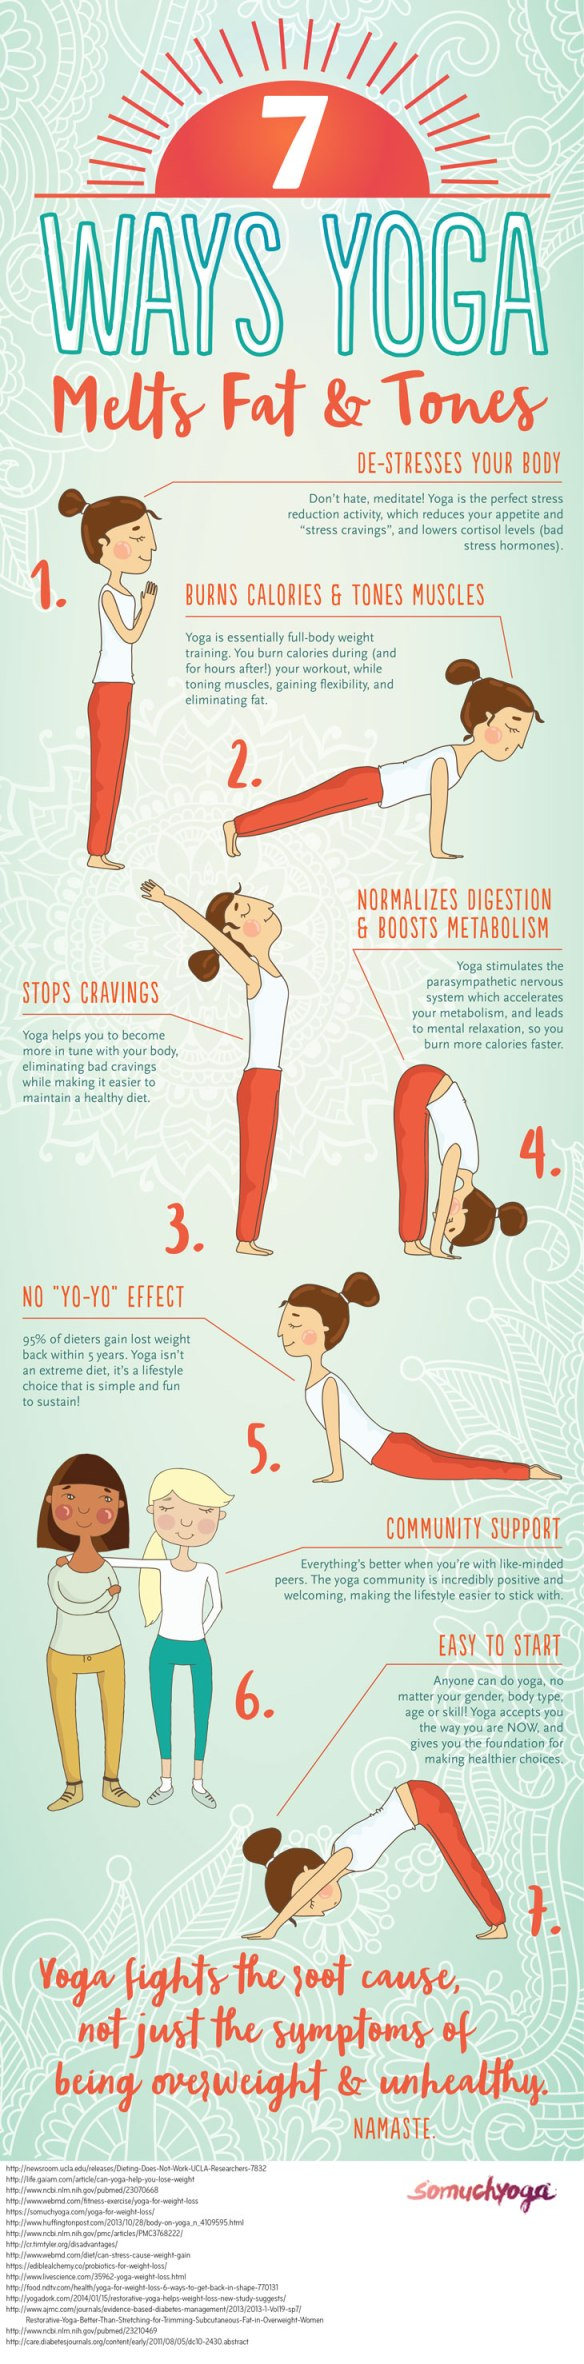 Yoga-for-weight-loss-infographic